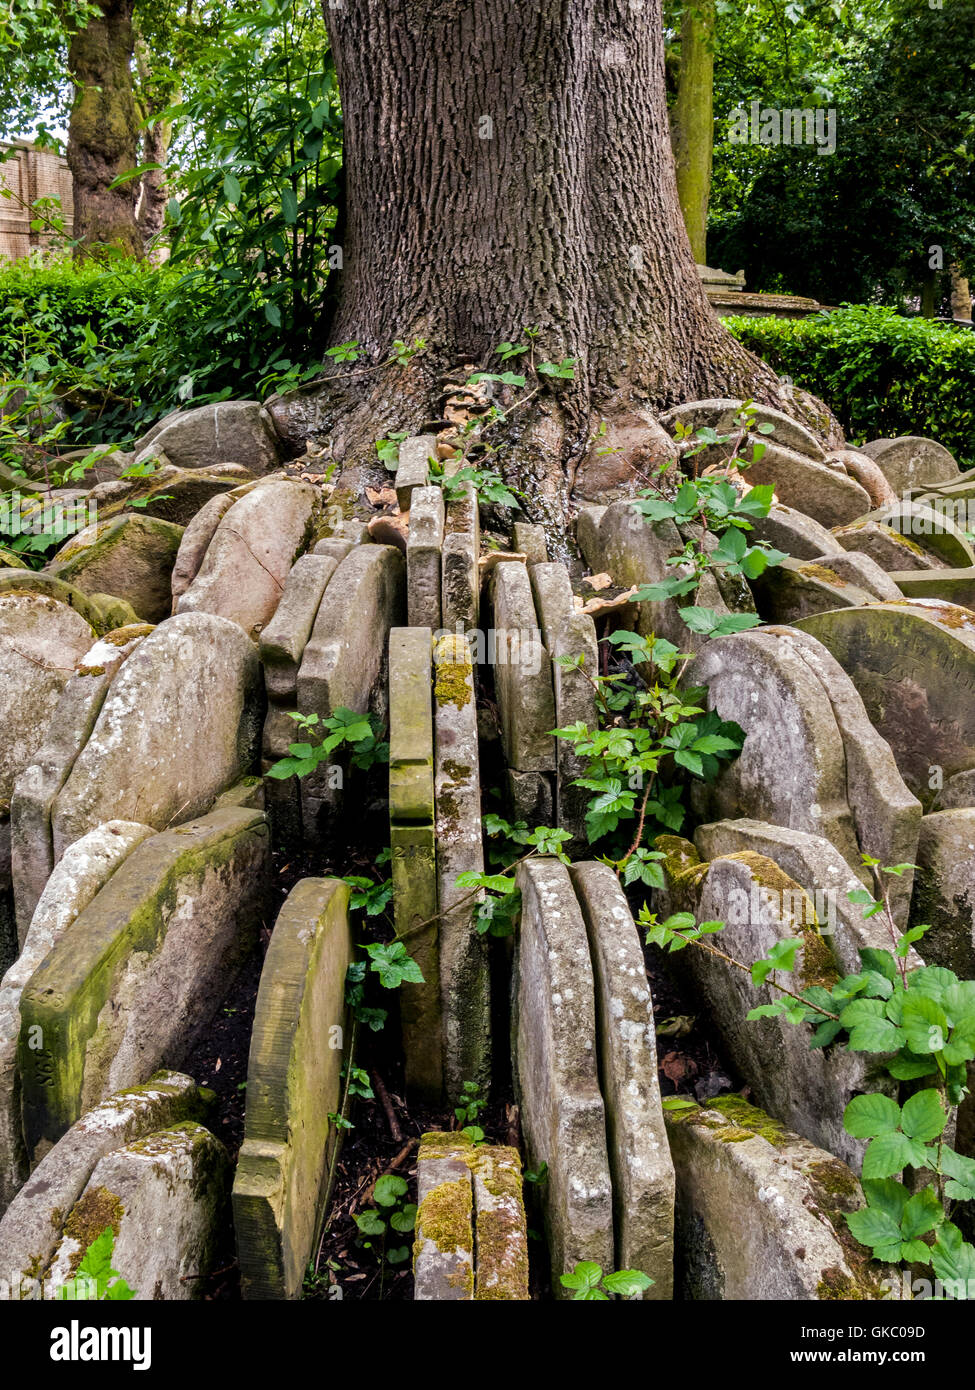 The Hardy Tree, St Pancras Old Church, London - Stock Image